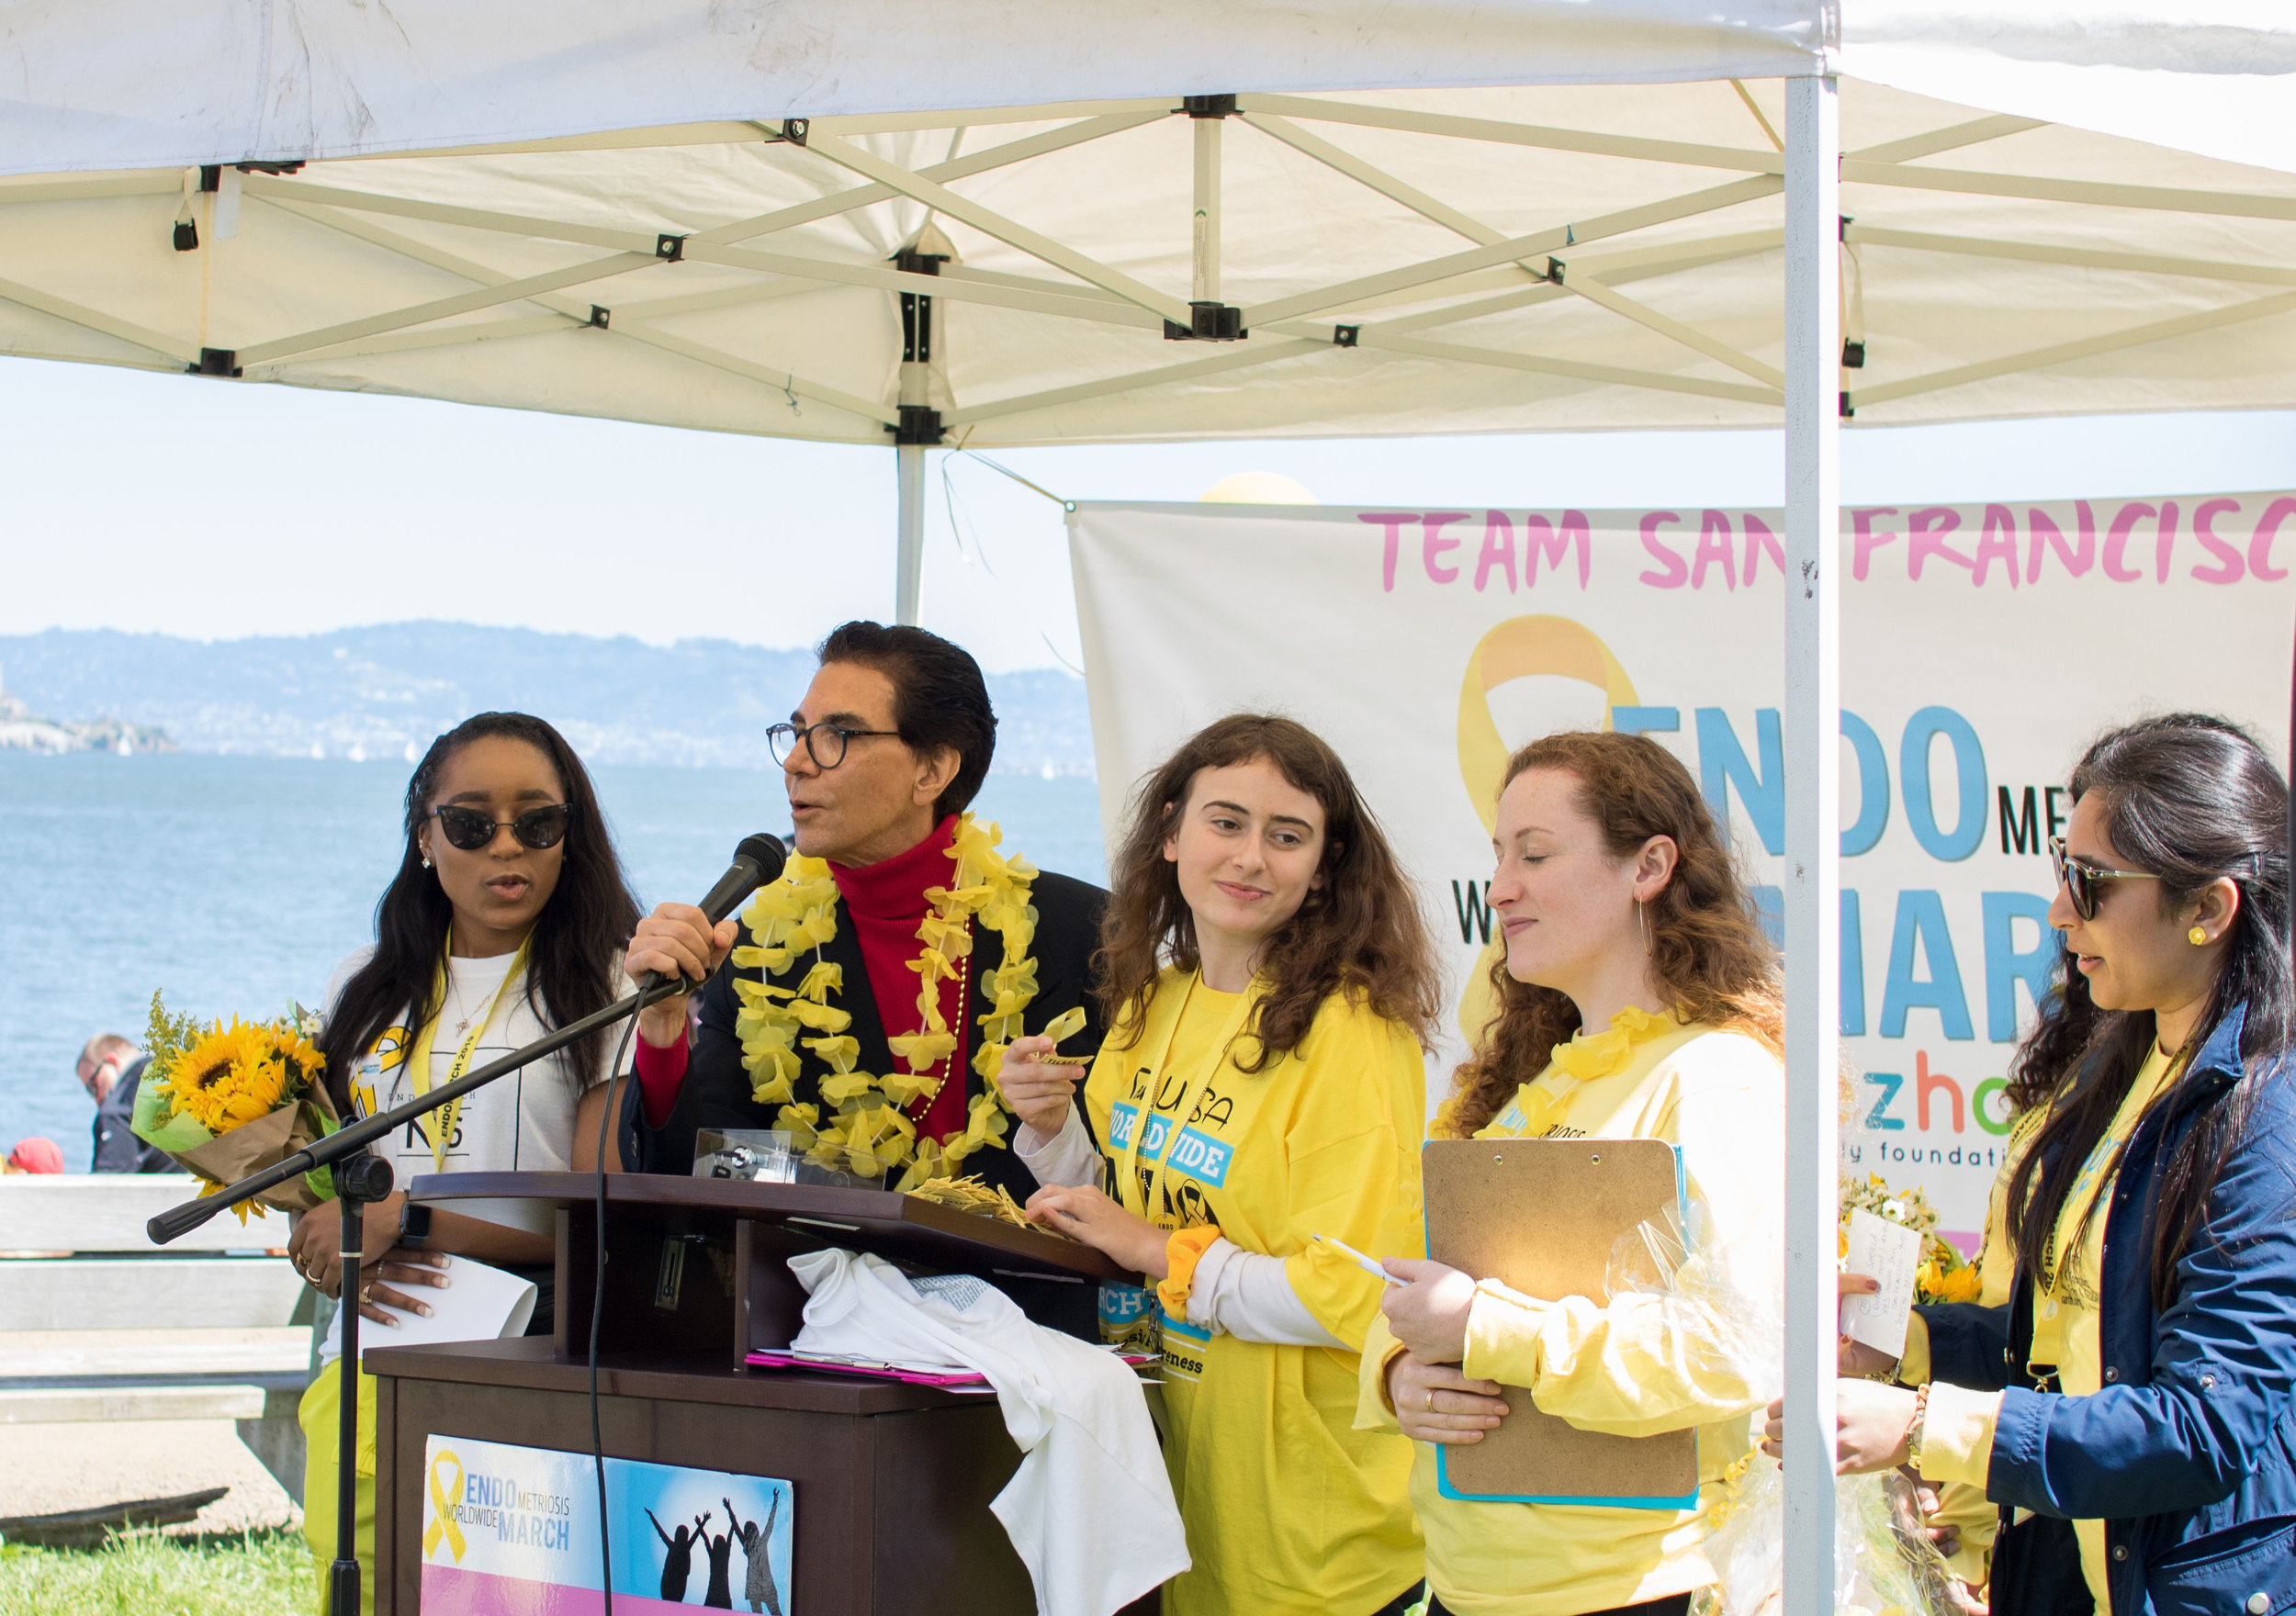 Picture above (L TO R): award recipients Shayla moore, Dr. Camran nezhat, Erica Mark, Jayne skinner, pavithra margaband, and komal saini, shown in their roles as co-directors of the 2019 san francisco endomarch.